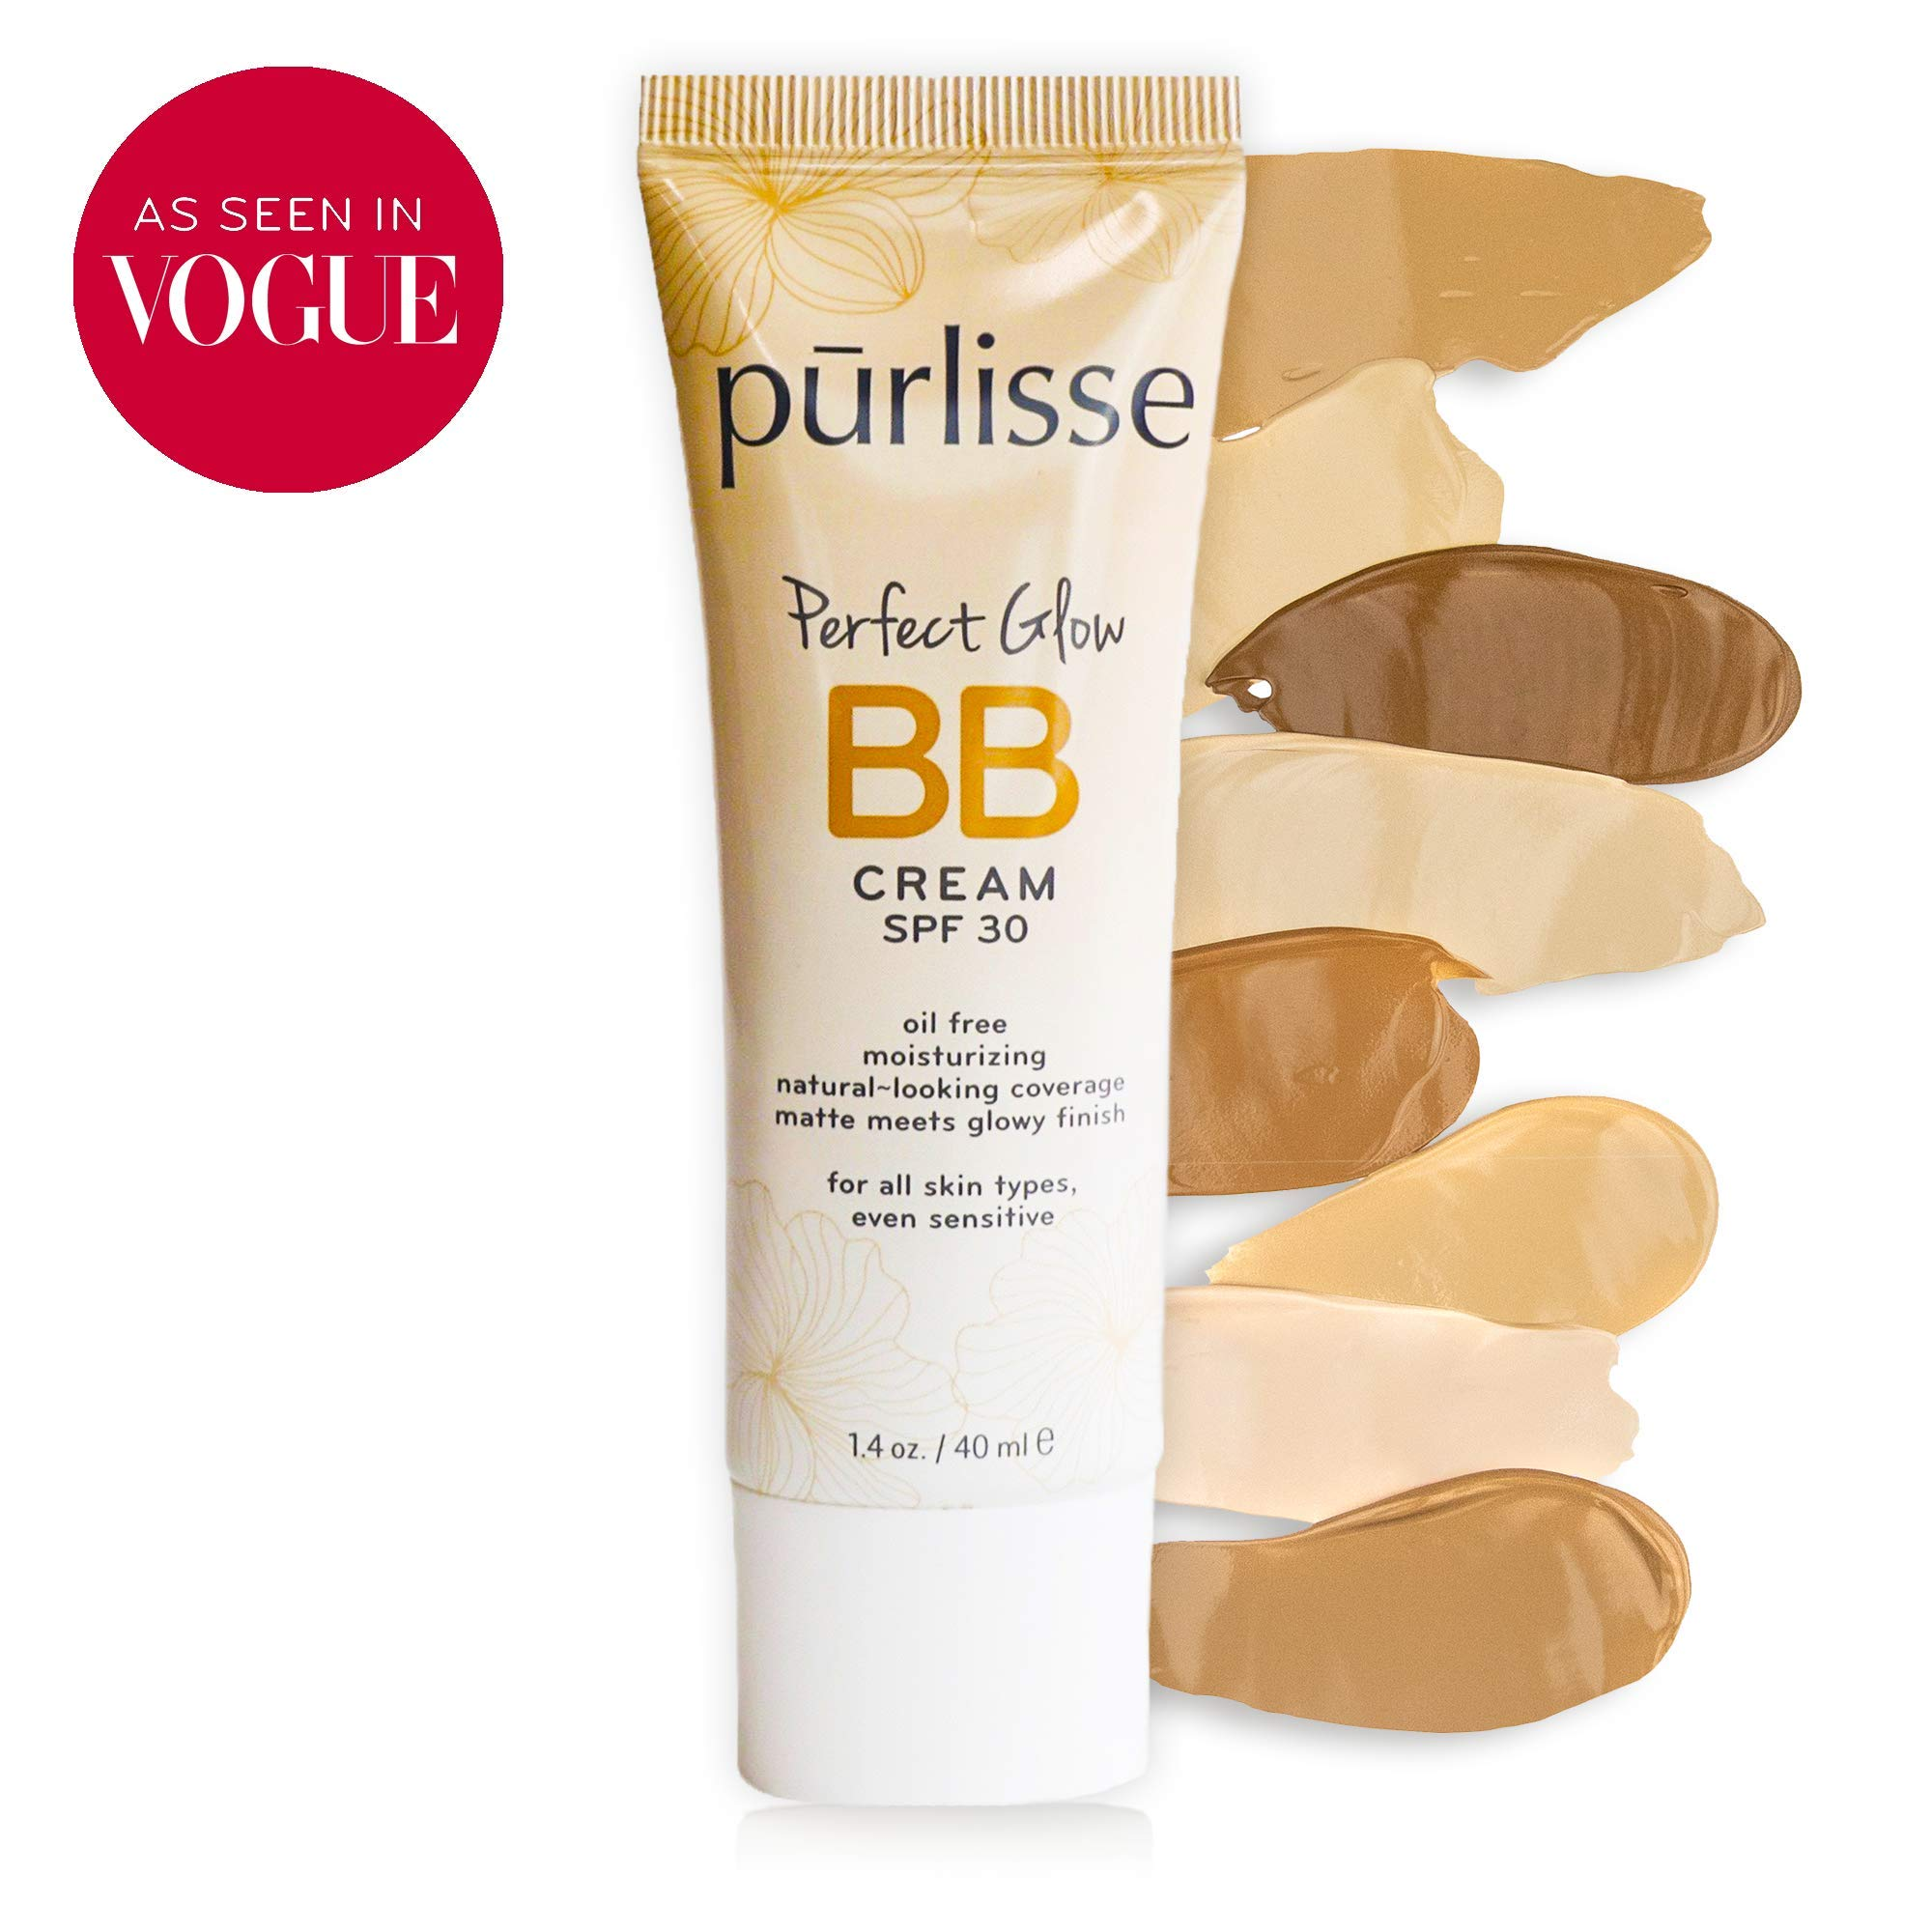 purlisse BB Tinted Moisturizer Cream SPF 30 - BB Cream for All Skin Types - Smooths Skin Texture, Evens Skin Tone - Medium, 1.4 Ounce by pūrlisse